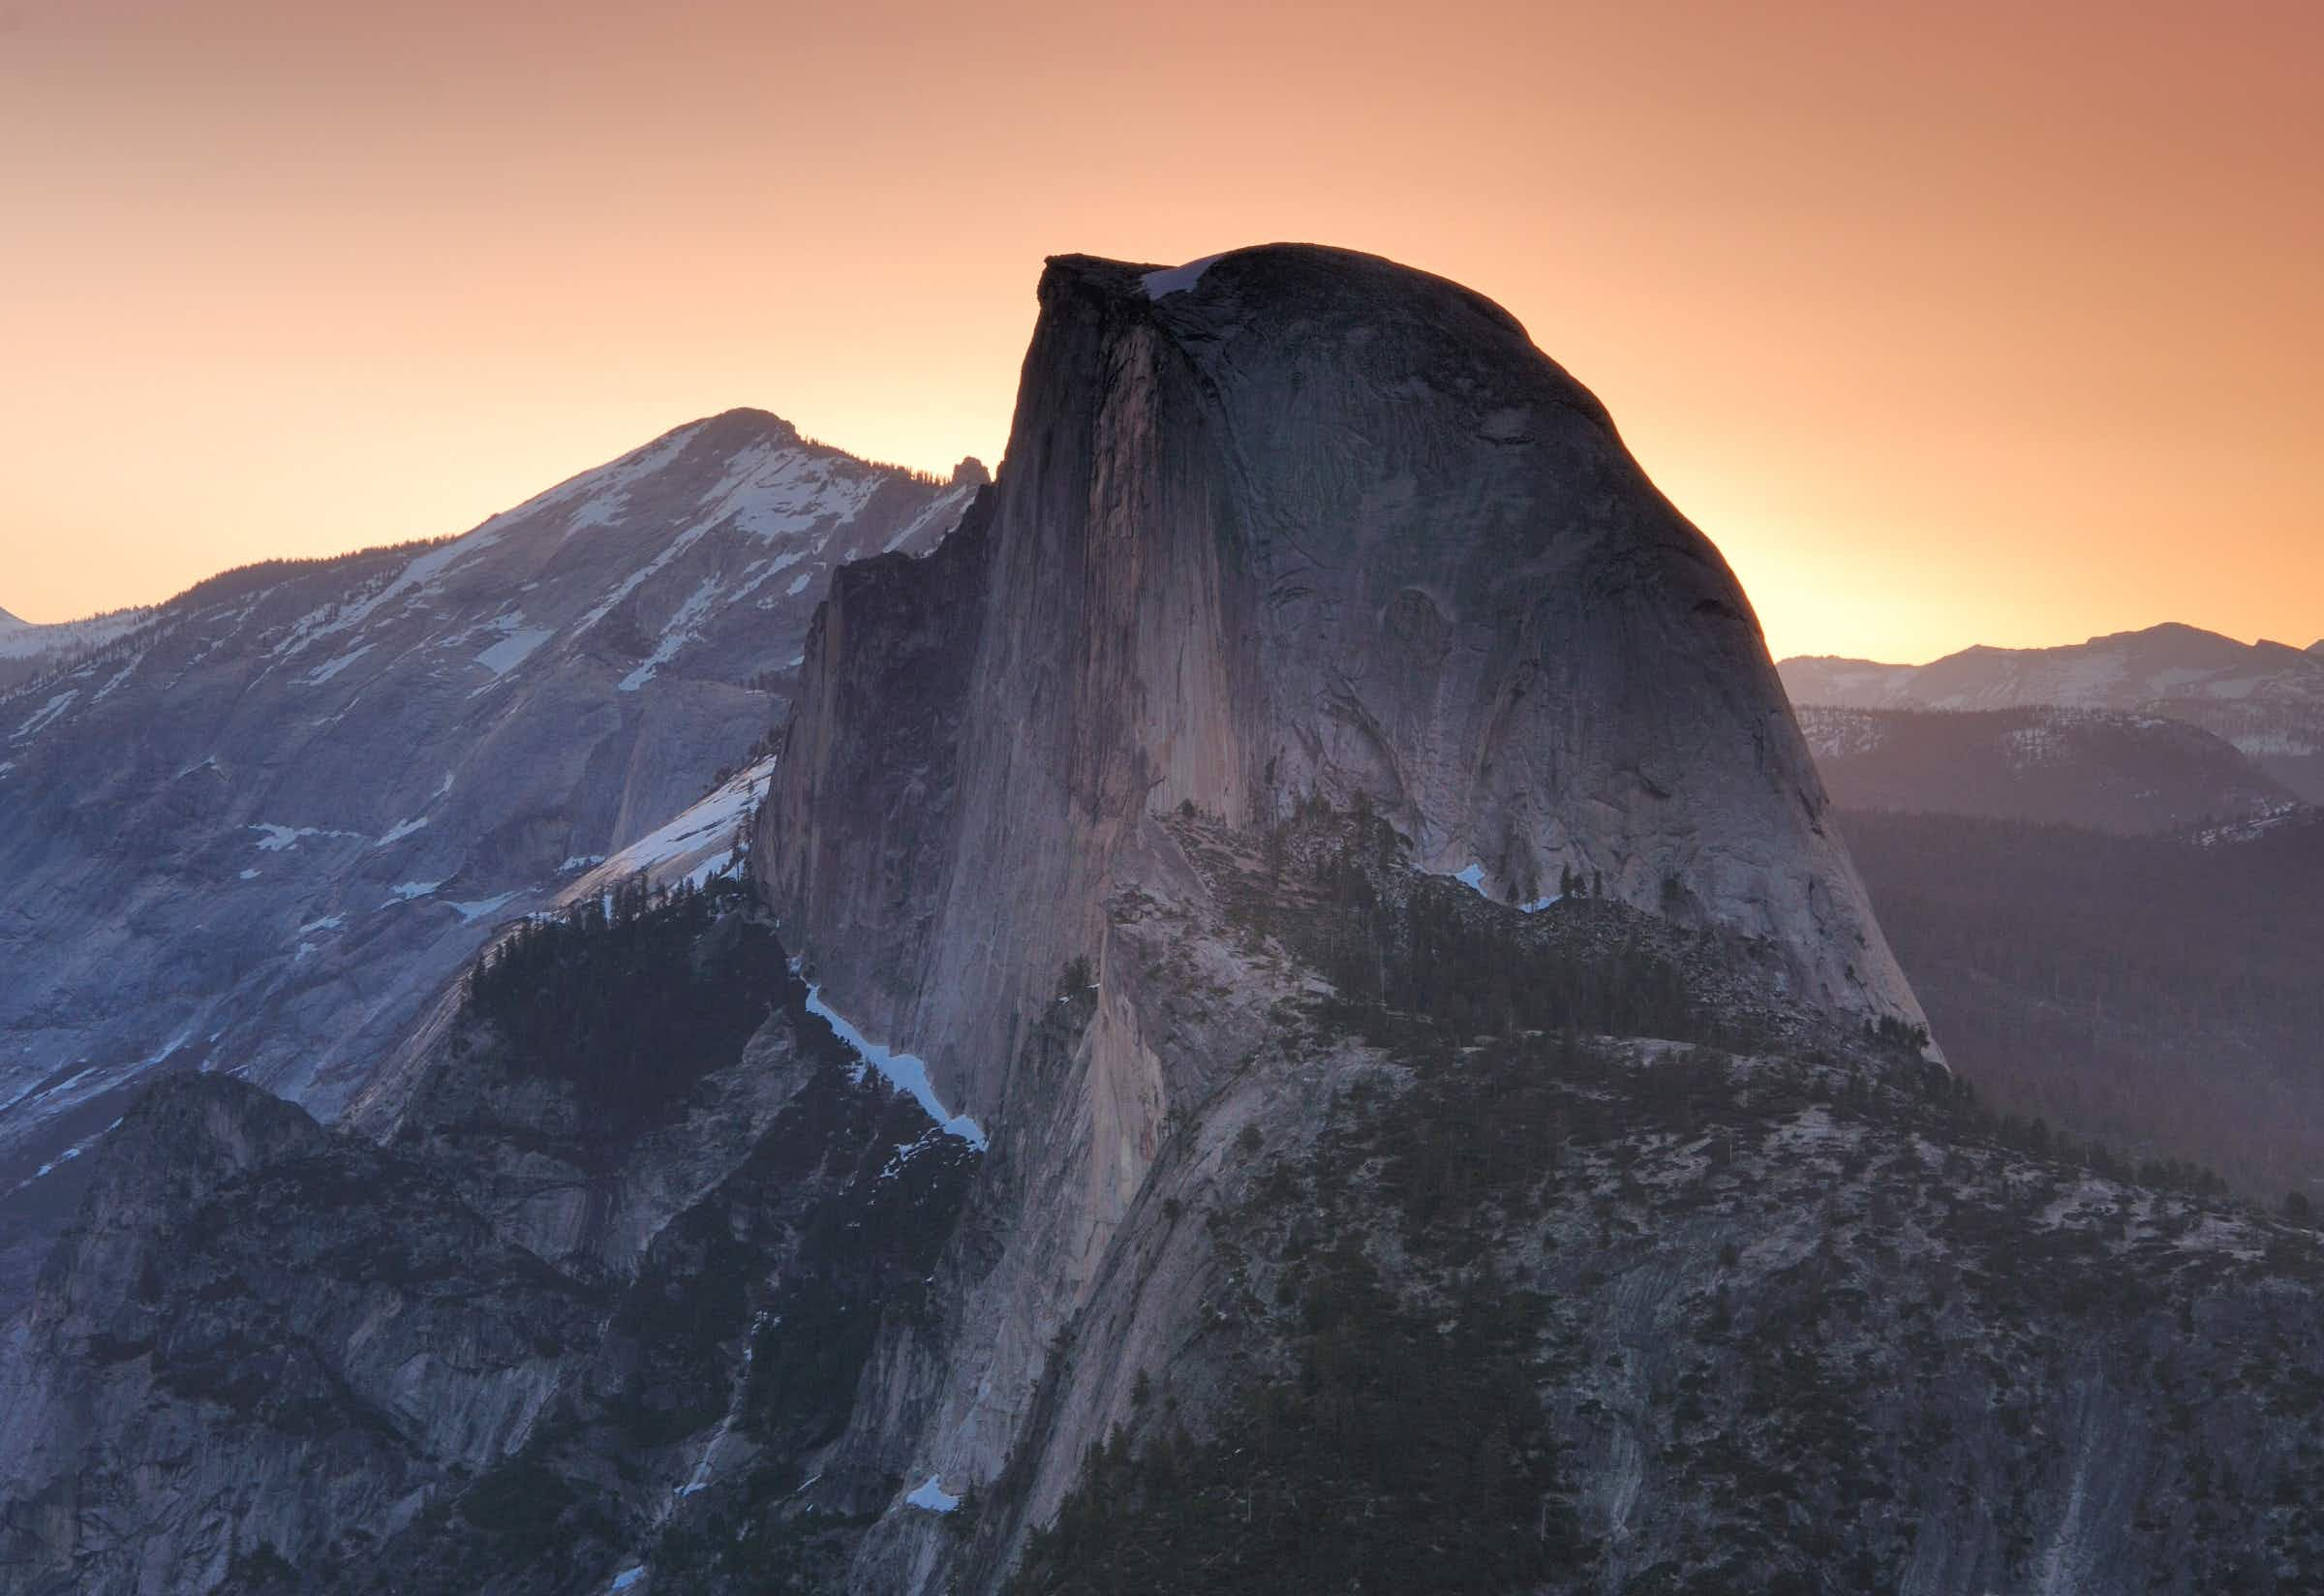 Part of California's famous Yosemite National Park reopens after wildfires